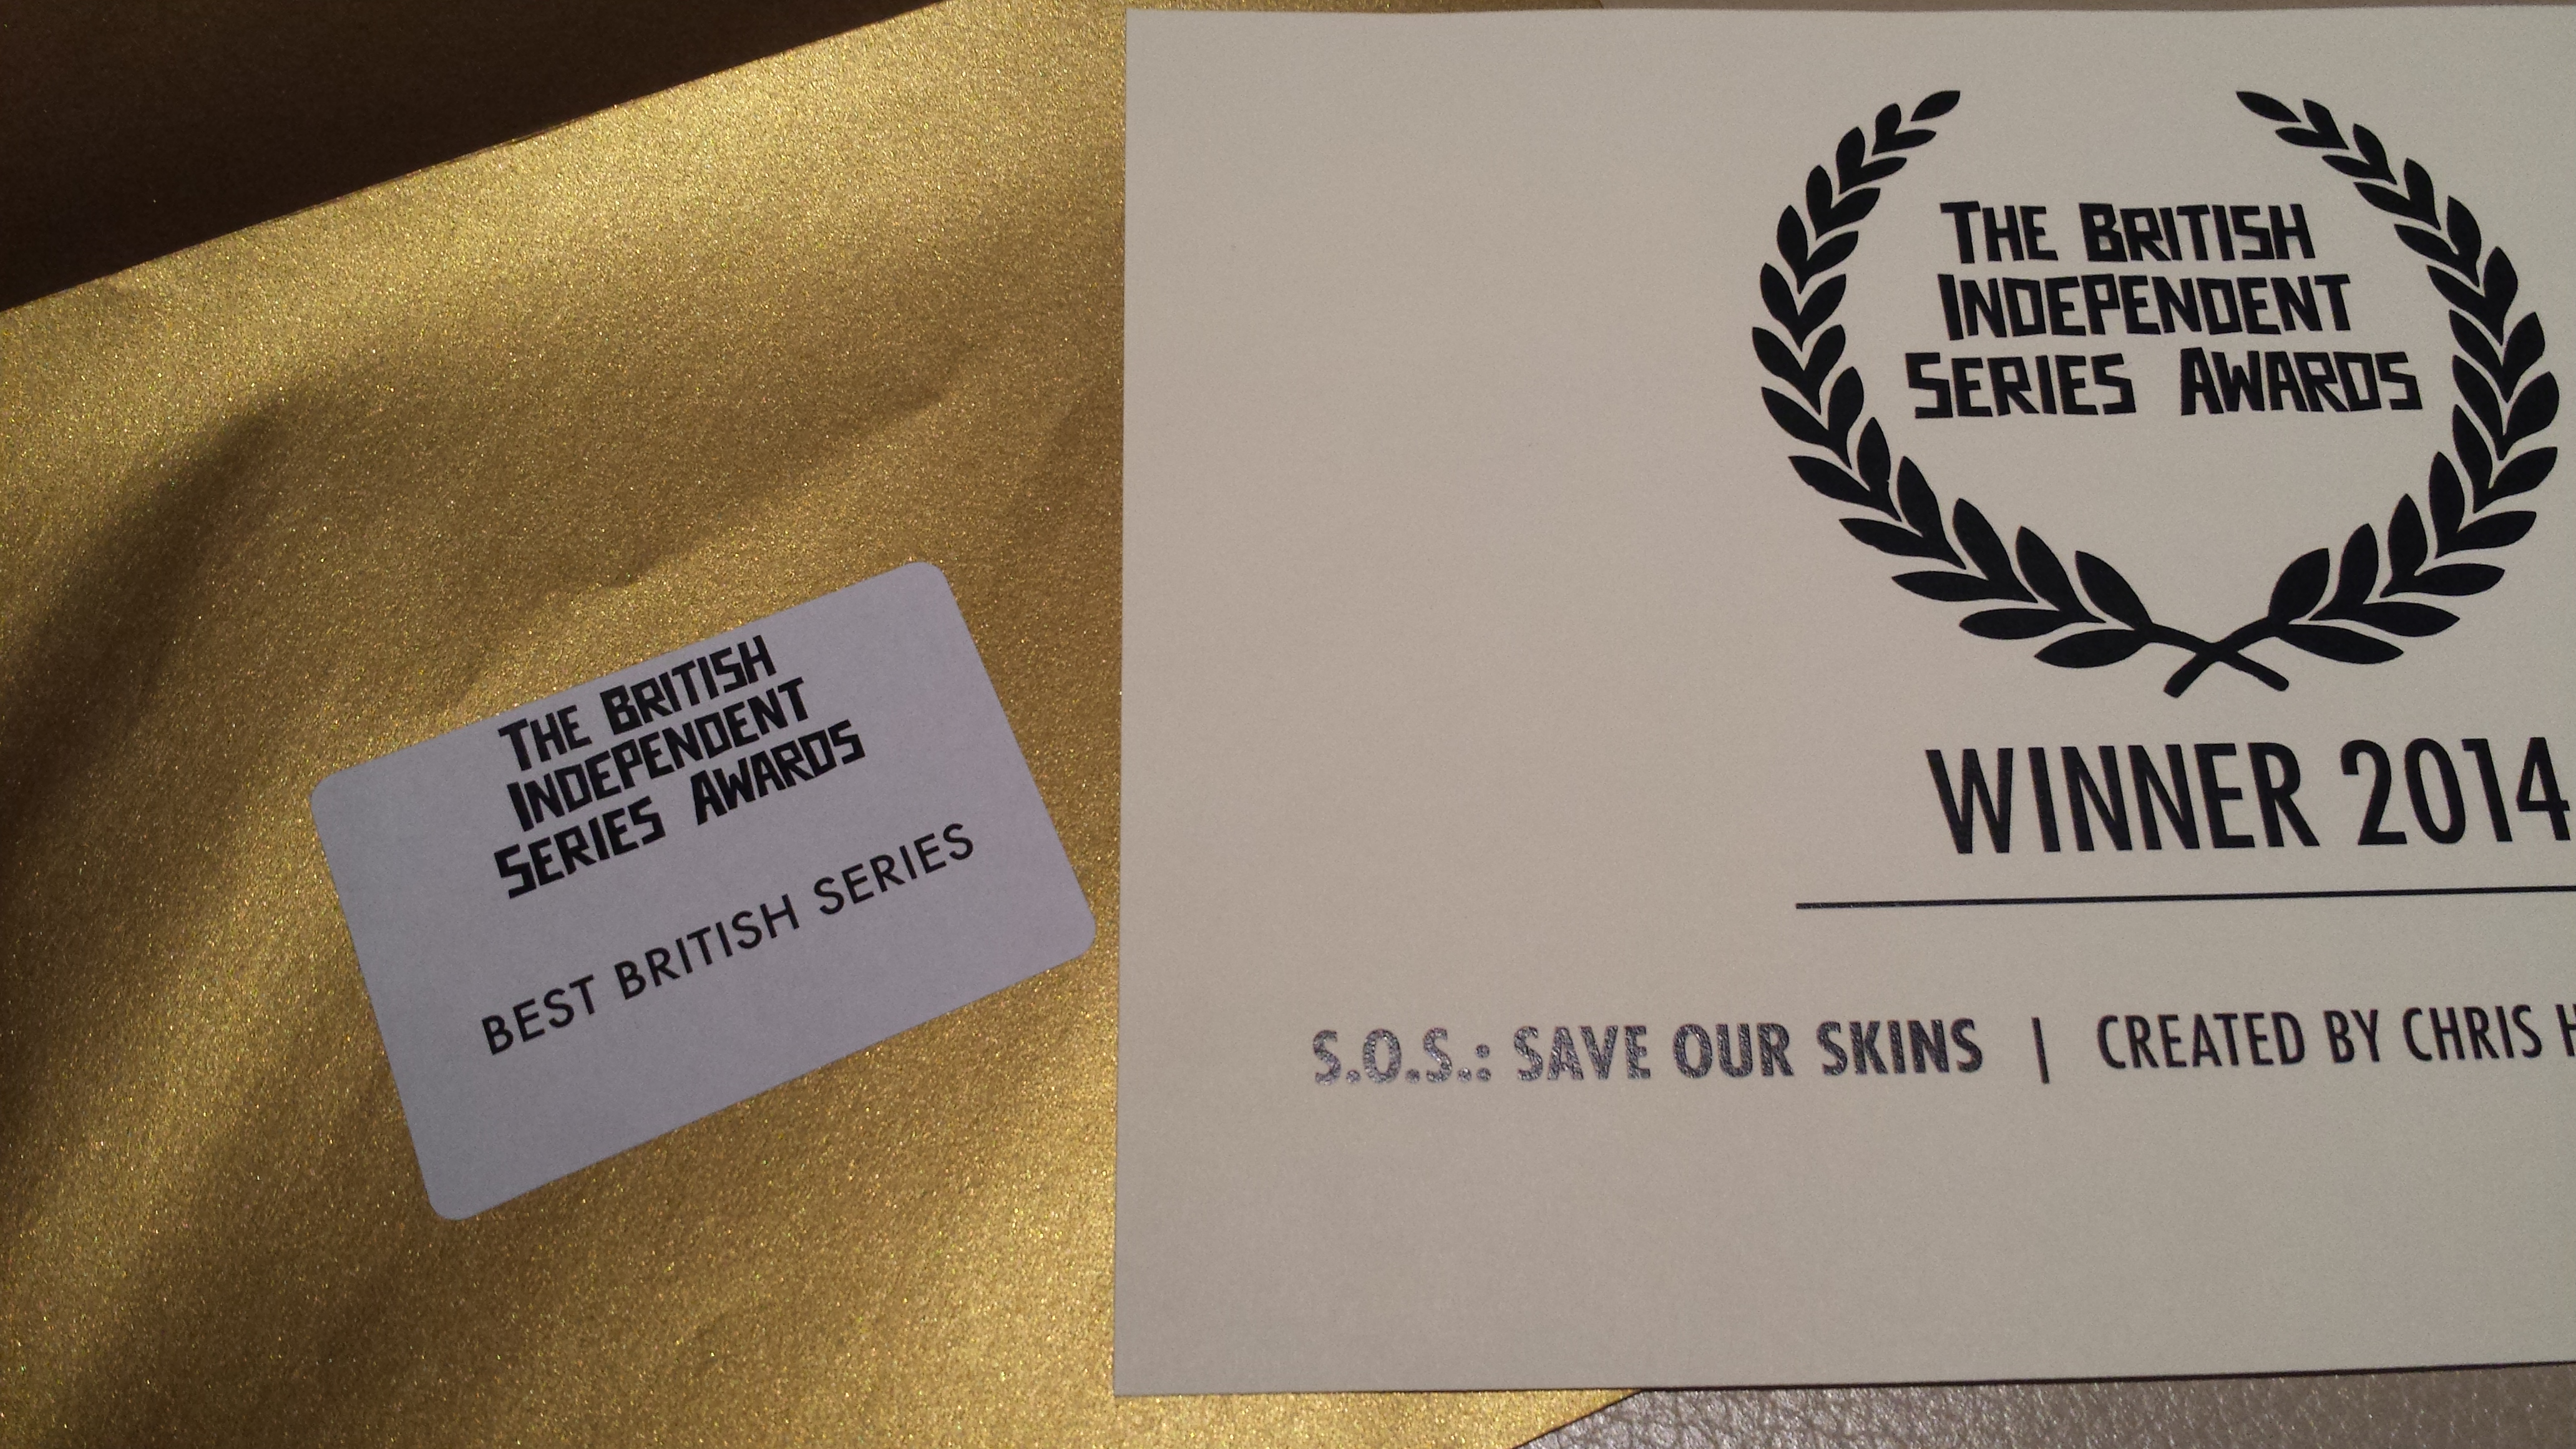 SOS: Save Our Skins wins Best British Series at the Raindance Film Festival #WebFest. Thanks to all who voted!